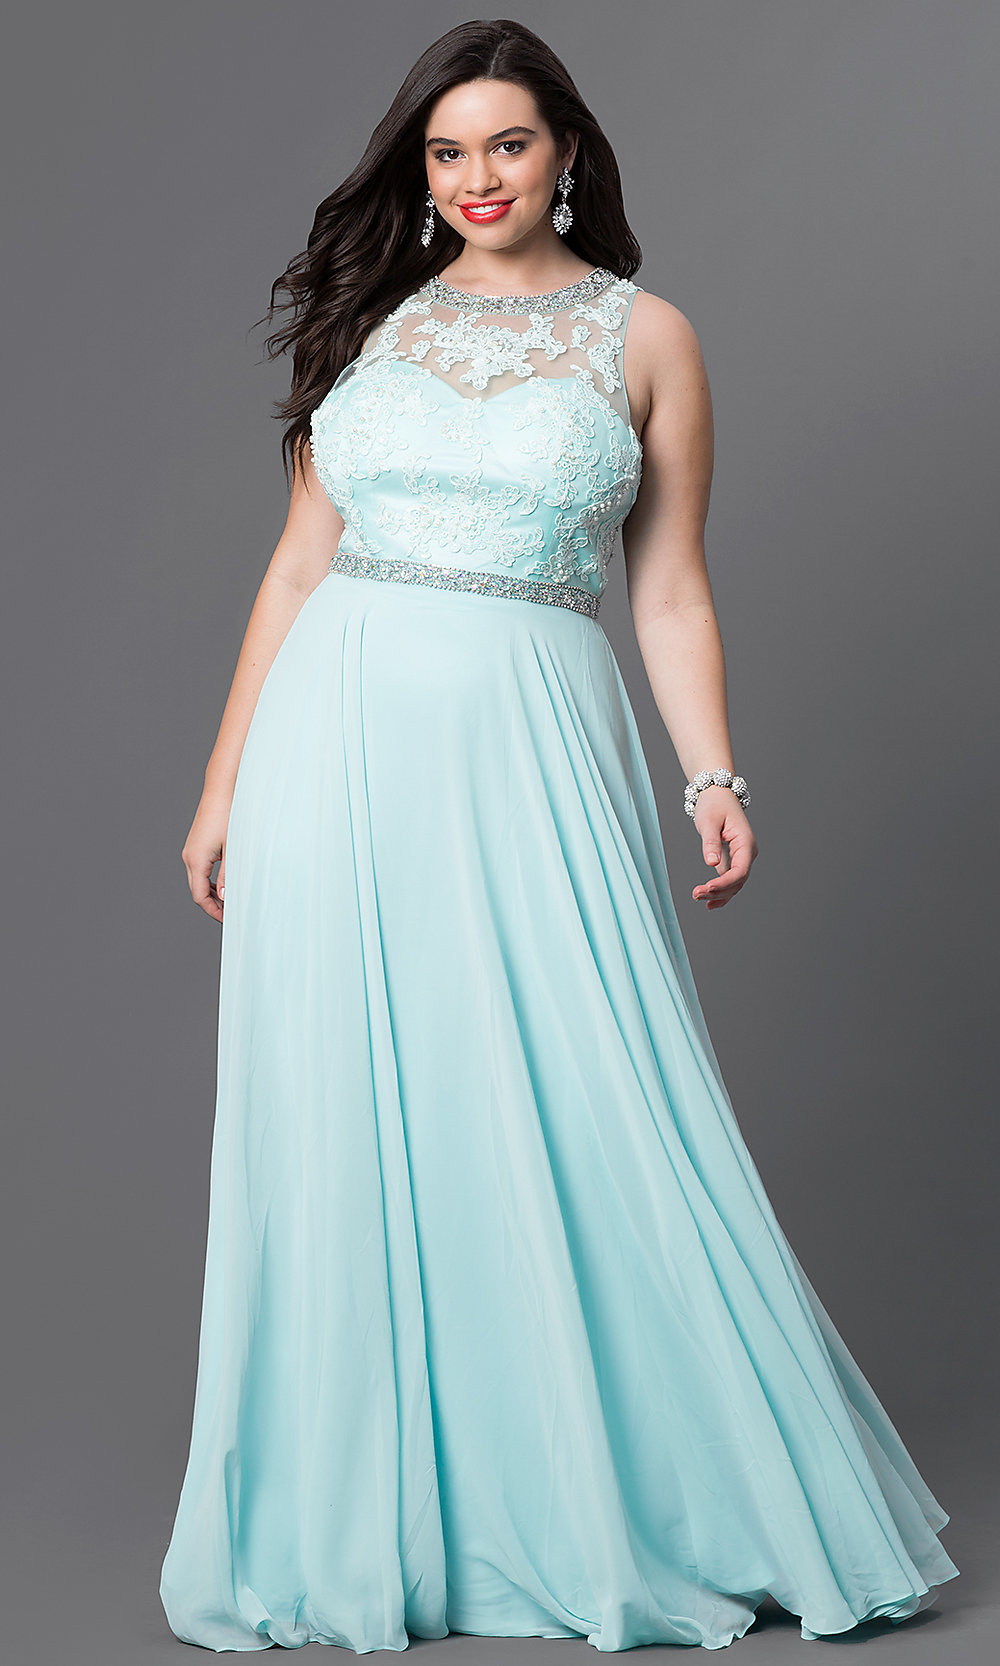 Celebrity Prom Dresses, Sexy Evening Gowns - PromGirl: DQ-9281Pb